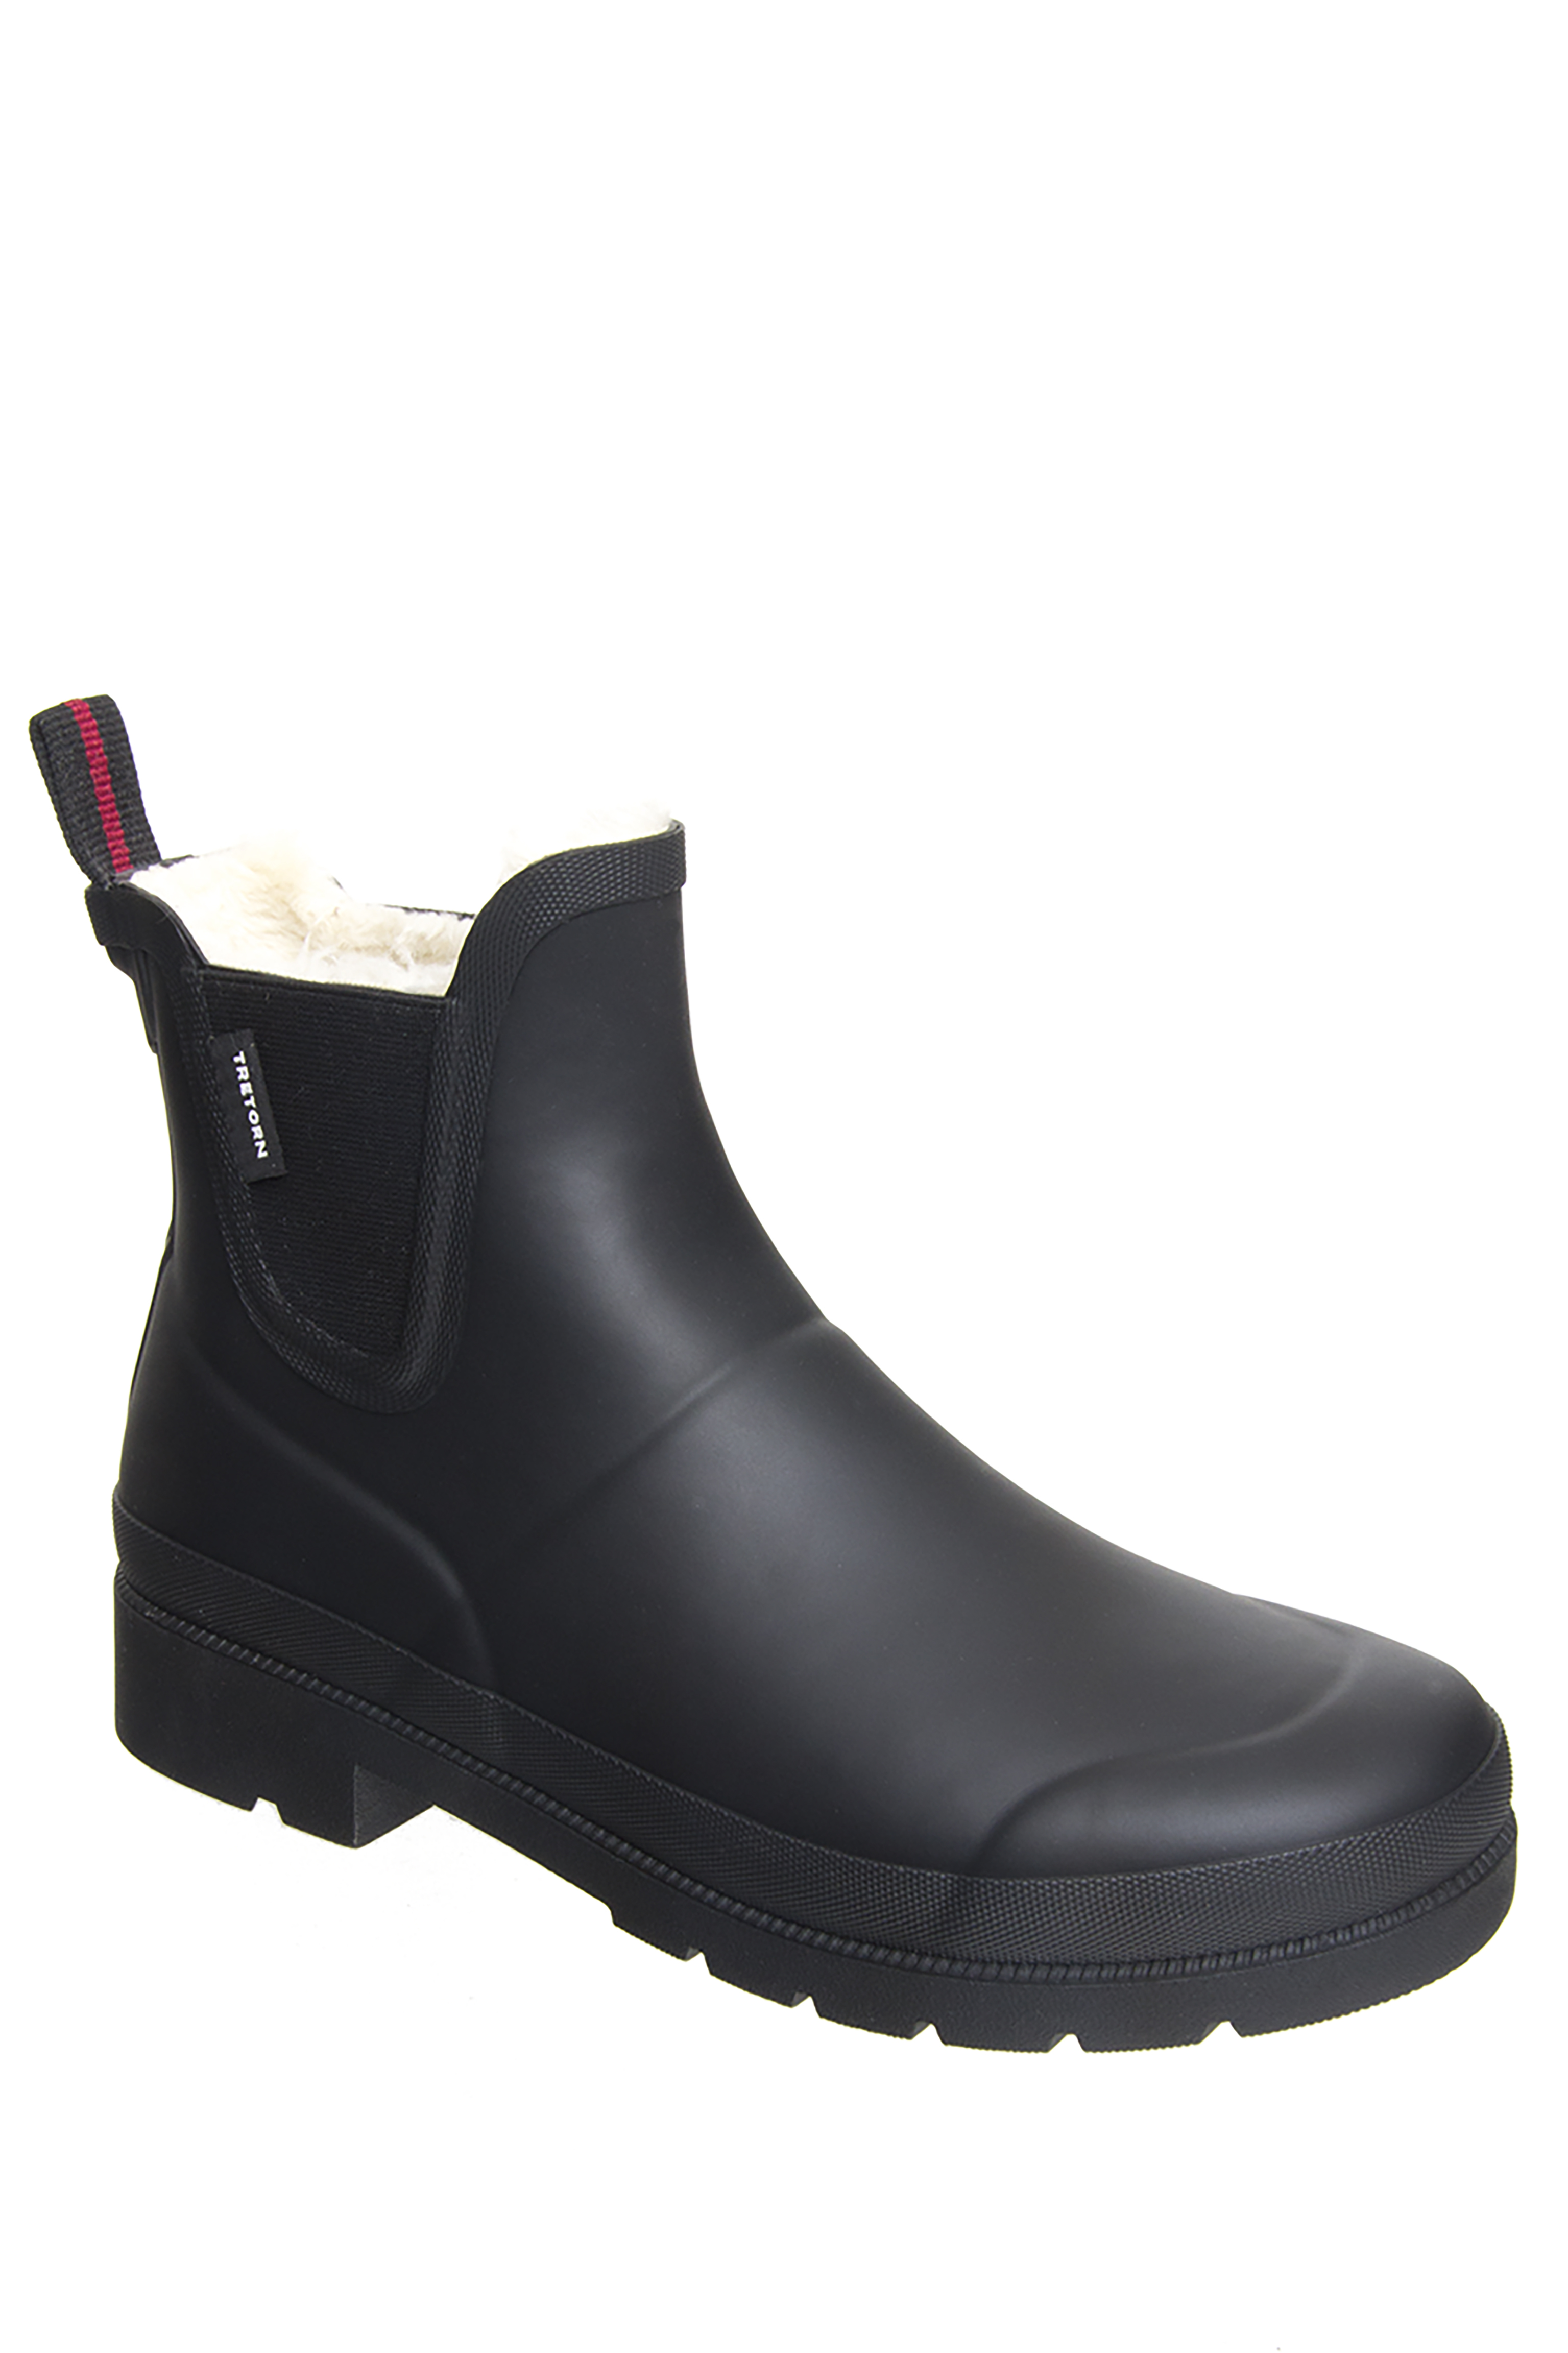 Tretorn Linawnt Low Heel Rain Boot Black by Tretorn